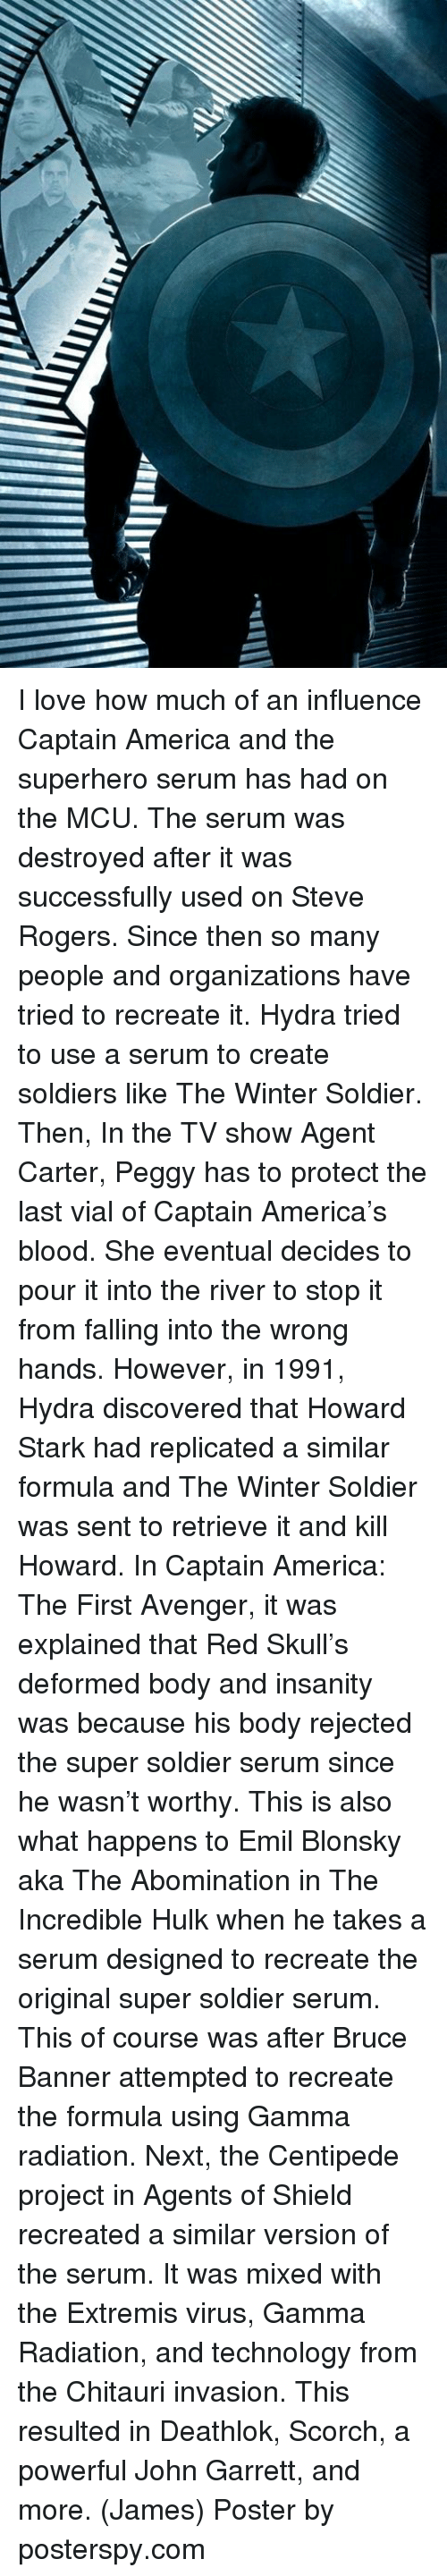 firstly: I love how much of an influence Captain America and the superhero serum has had on the MCU. The serum was destroyed after it was successfully used on Steve Rogers. Since then so many people and organizations have tried to recreate it.  Hydra tried to use a serum to create soldiers like The Winter Soldier. Then, In the TV show Agent Carter, Peggy has to protect the last vial of Captain America's blood. She eventual decides to pour it into the river to stop it from falling into the wrong hands. However, in 1991, Hydra discovered that Howard Stark had replicated a similar formula and The Winter Soldier was sent to retrieve it and kill Howard.   In Captain America: The First Avenger, it was explained that Red Skull's deformed body and insanity was because his body rejected the super soldier serum since he wasn't worthy. This is also what happens to Emil Blonsky aka The Abomination in The Incredible Hulk when he takes a serum designed to recreate the original super soldier serum. This of course was after Bruce Banner attempted to recreate the formula using Gamma radiation.   Next, the Centipede project in Agents of Shield recreated a similar version of the serum. It was mixed with the Extremis virus, Gamma Radiation, and technology from the Chitauri invasion. This resulted in Deathlok, Scorch, a powerful John Garrett, and more.  (James)  Poster by posterspy.com